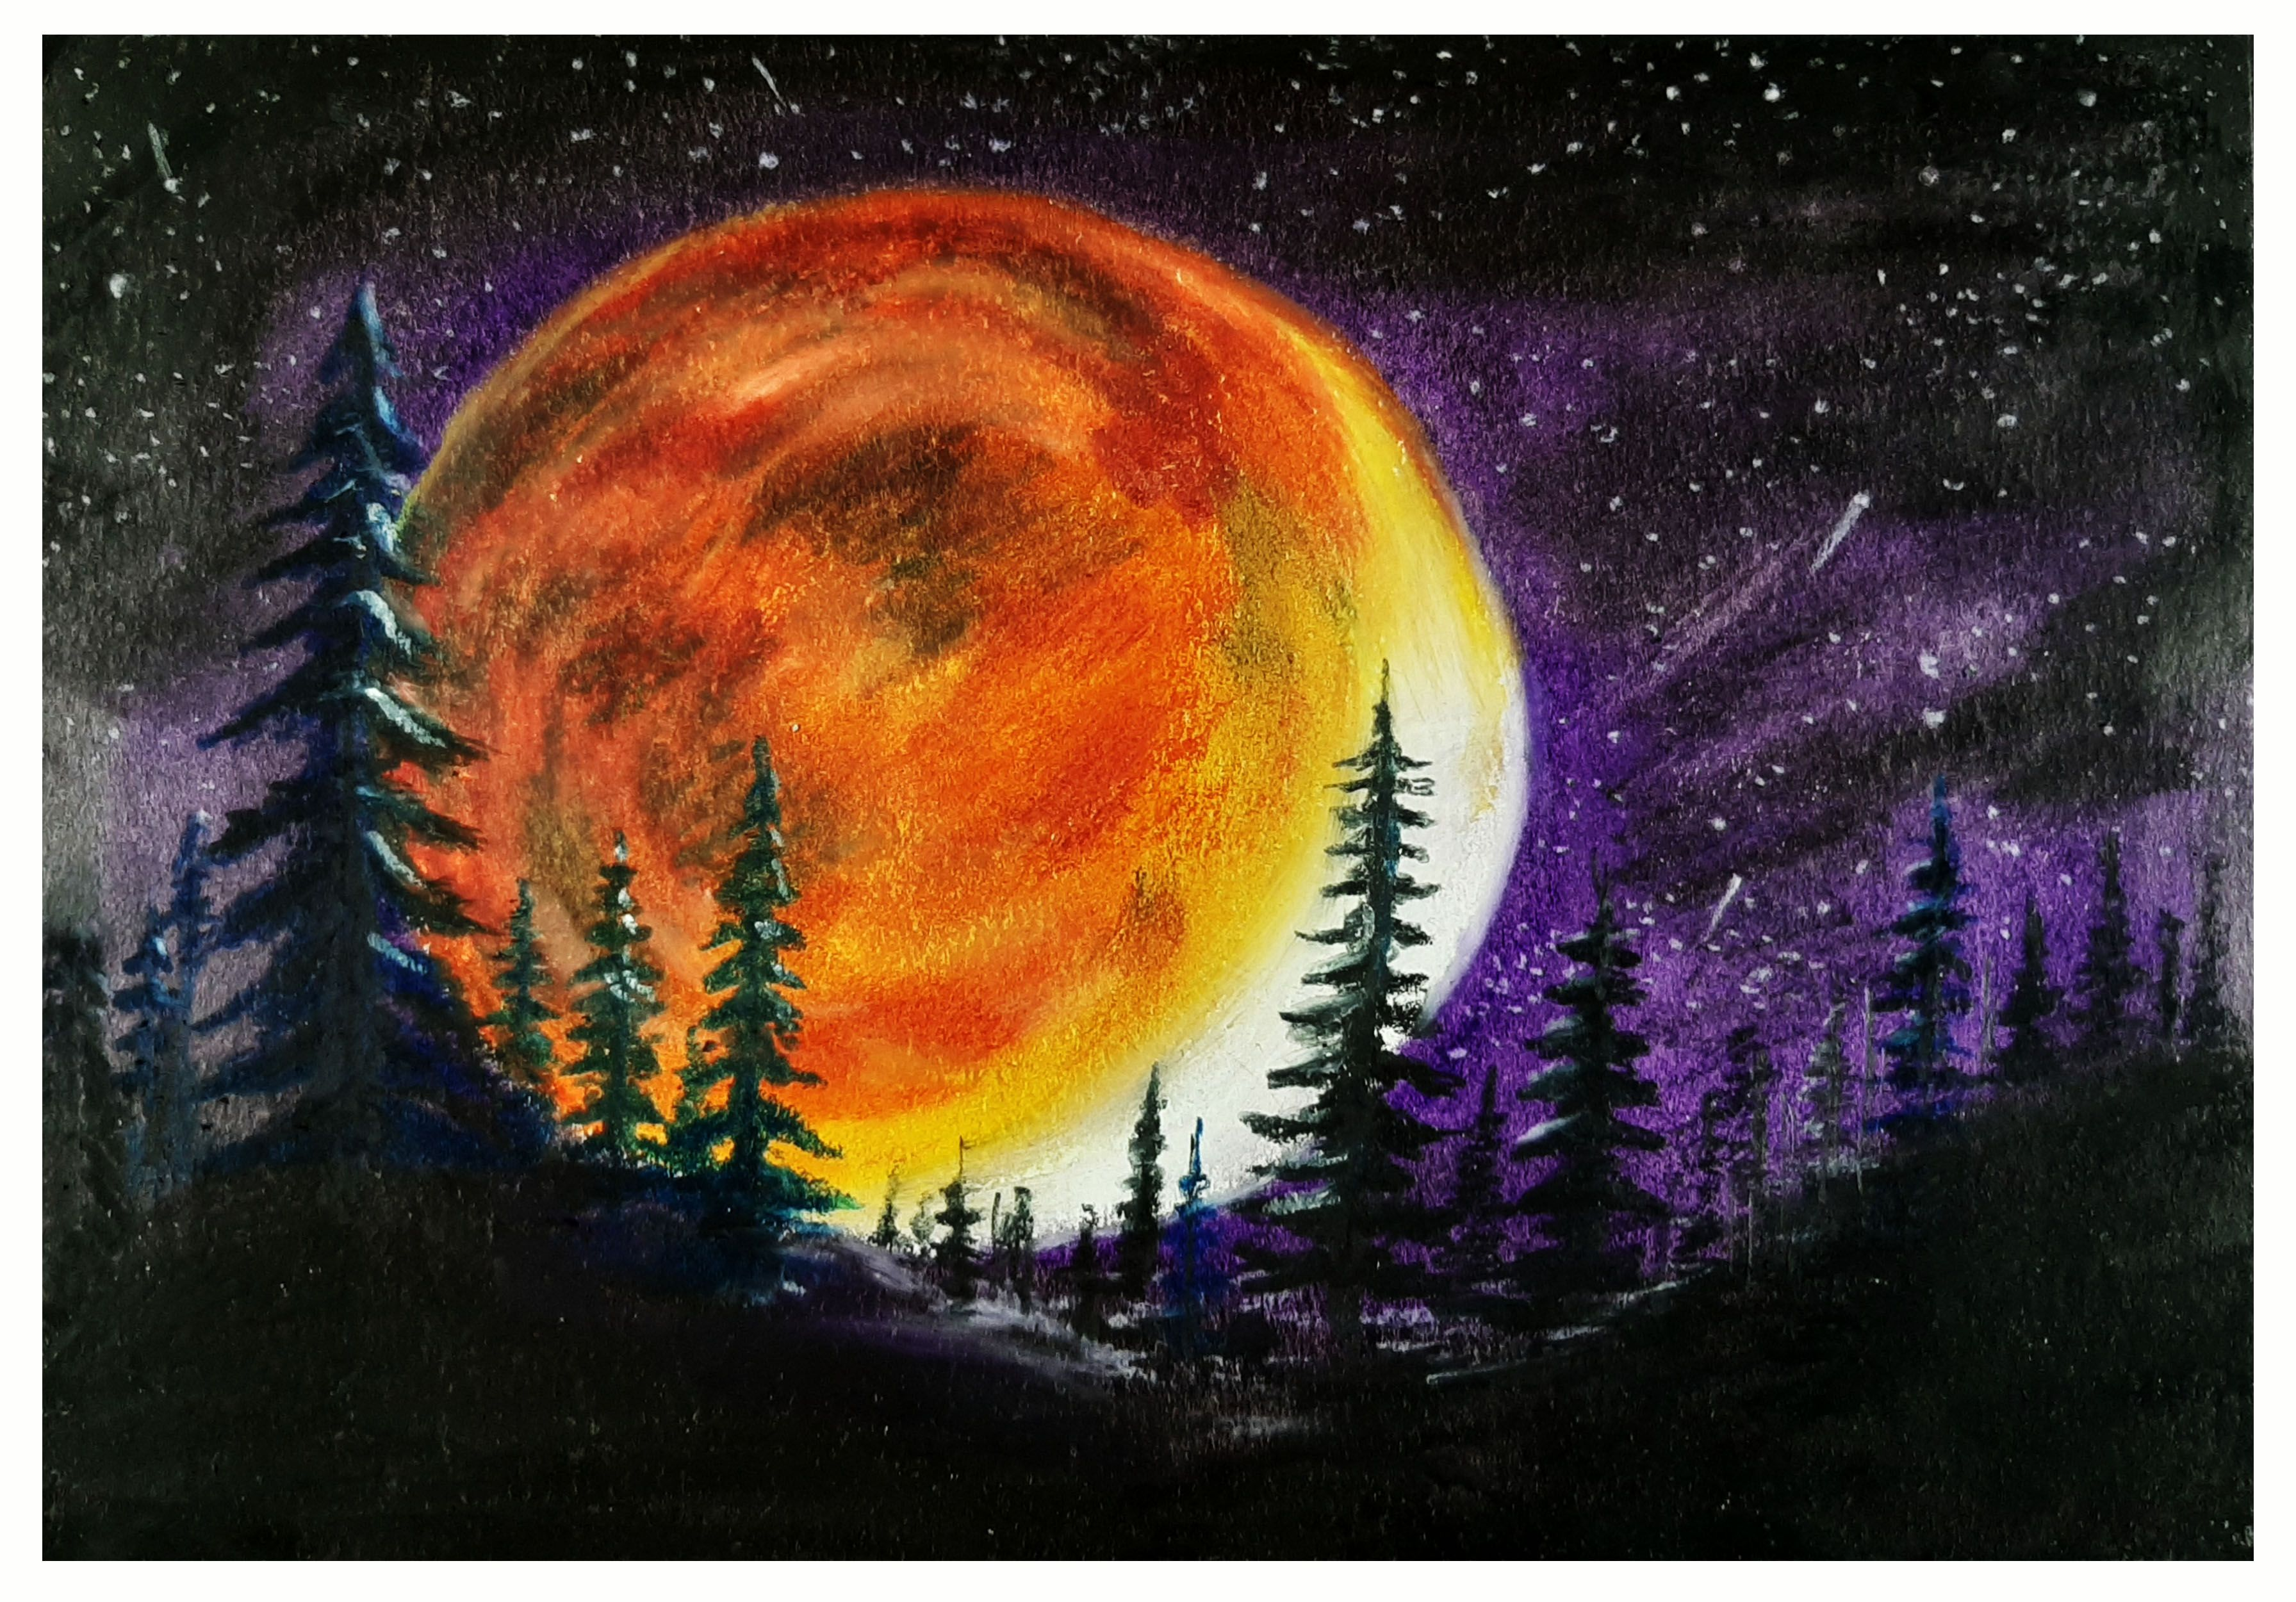 Hi All Watch And Enjoy Our New Video Showing A Drawing Of Beautiful Night With Moon Night Scenery With Moon Dra Oil Pastel Drawings Night Scenery Oil Pastel